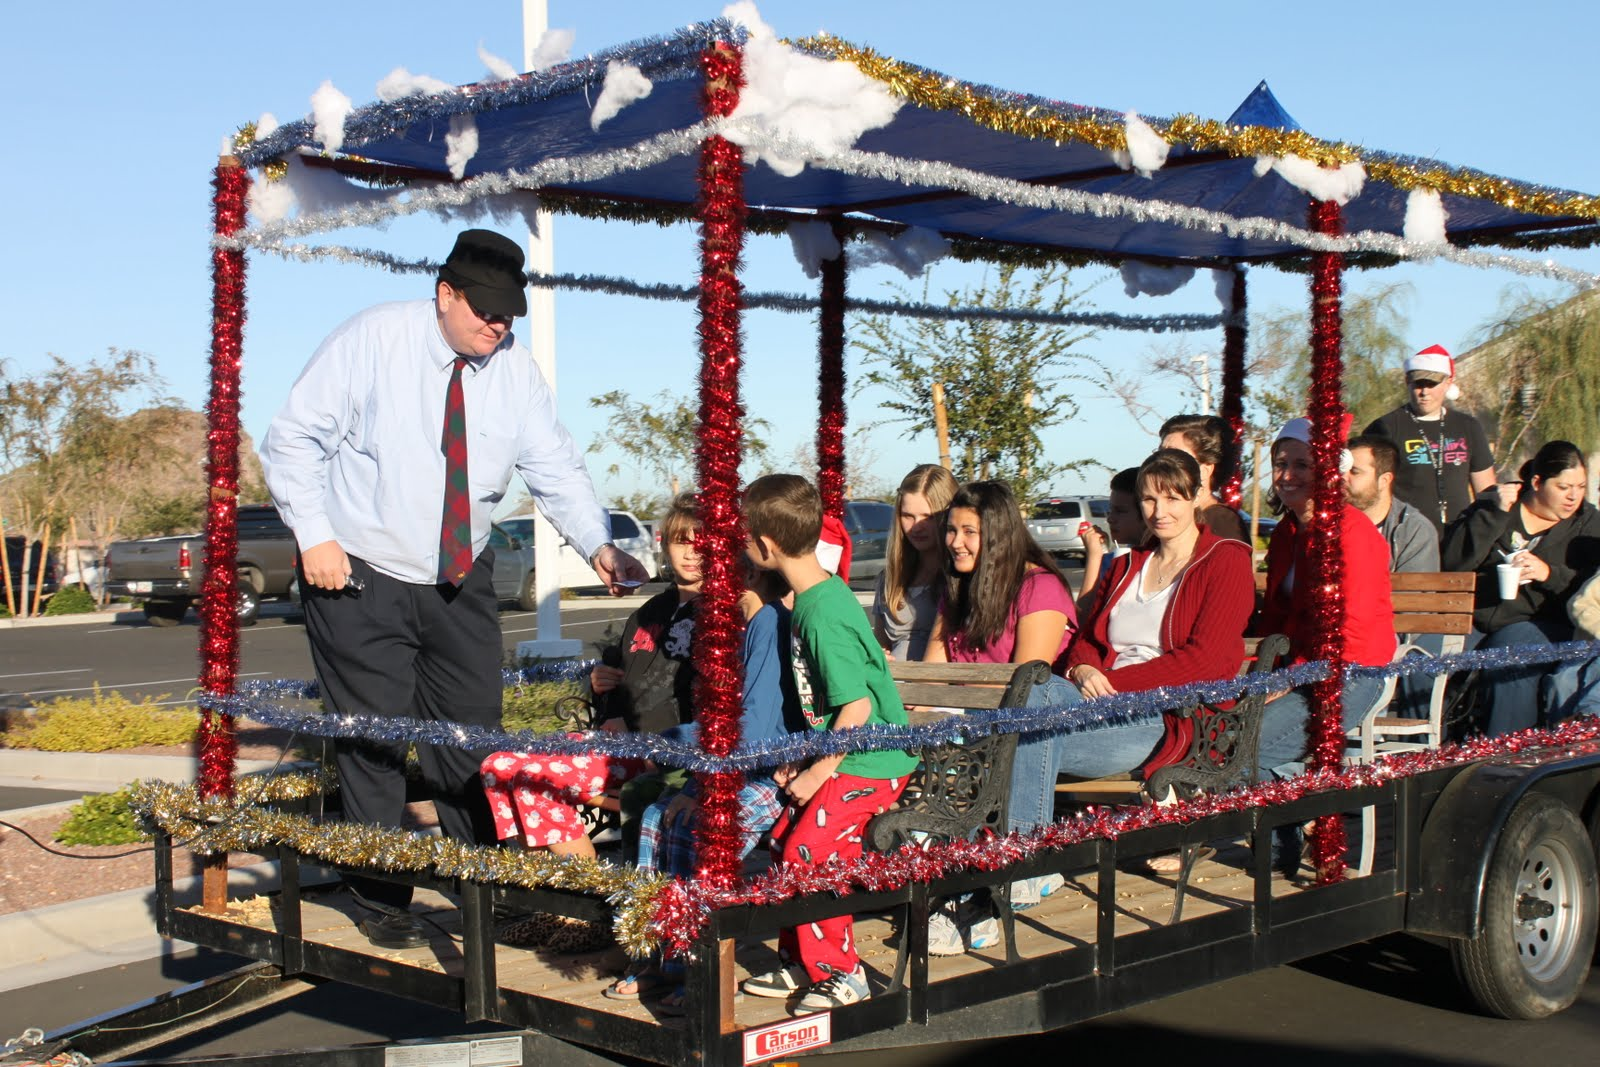 JOY FOR YOUR JOURNEY: Our Polar Express Party